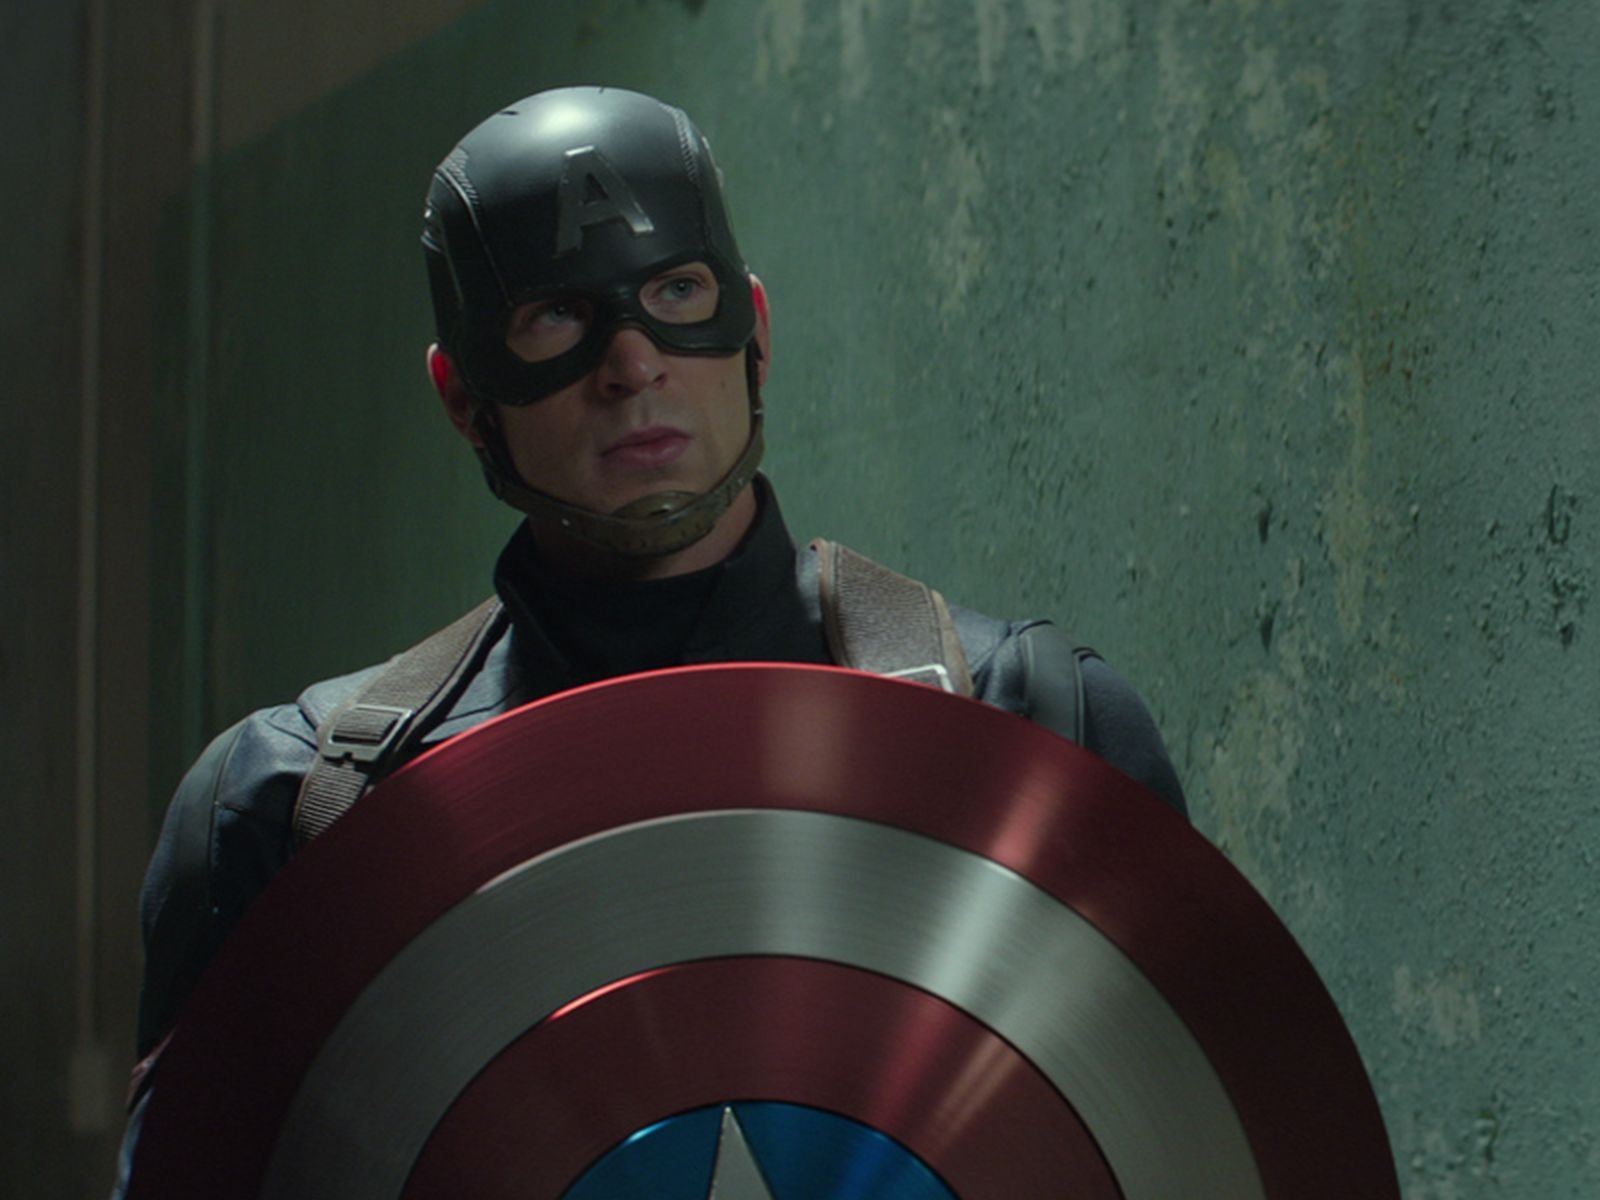 captain america fan has part of nose chopped off to look